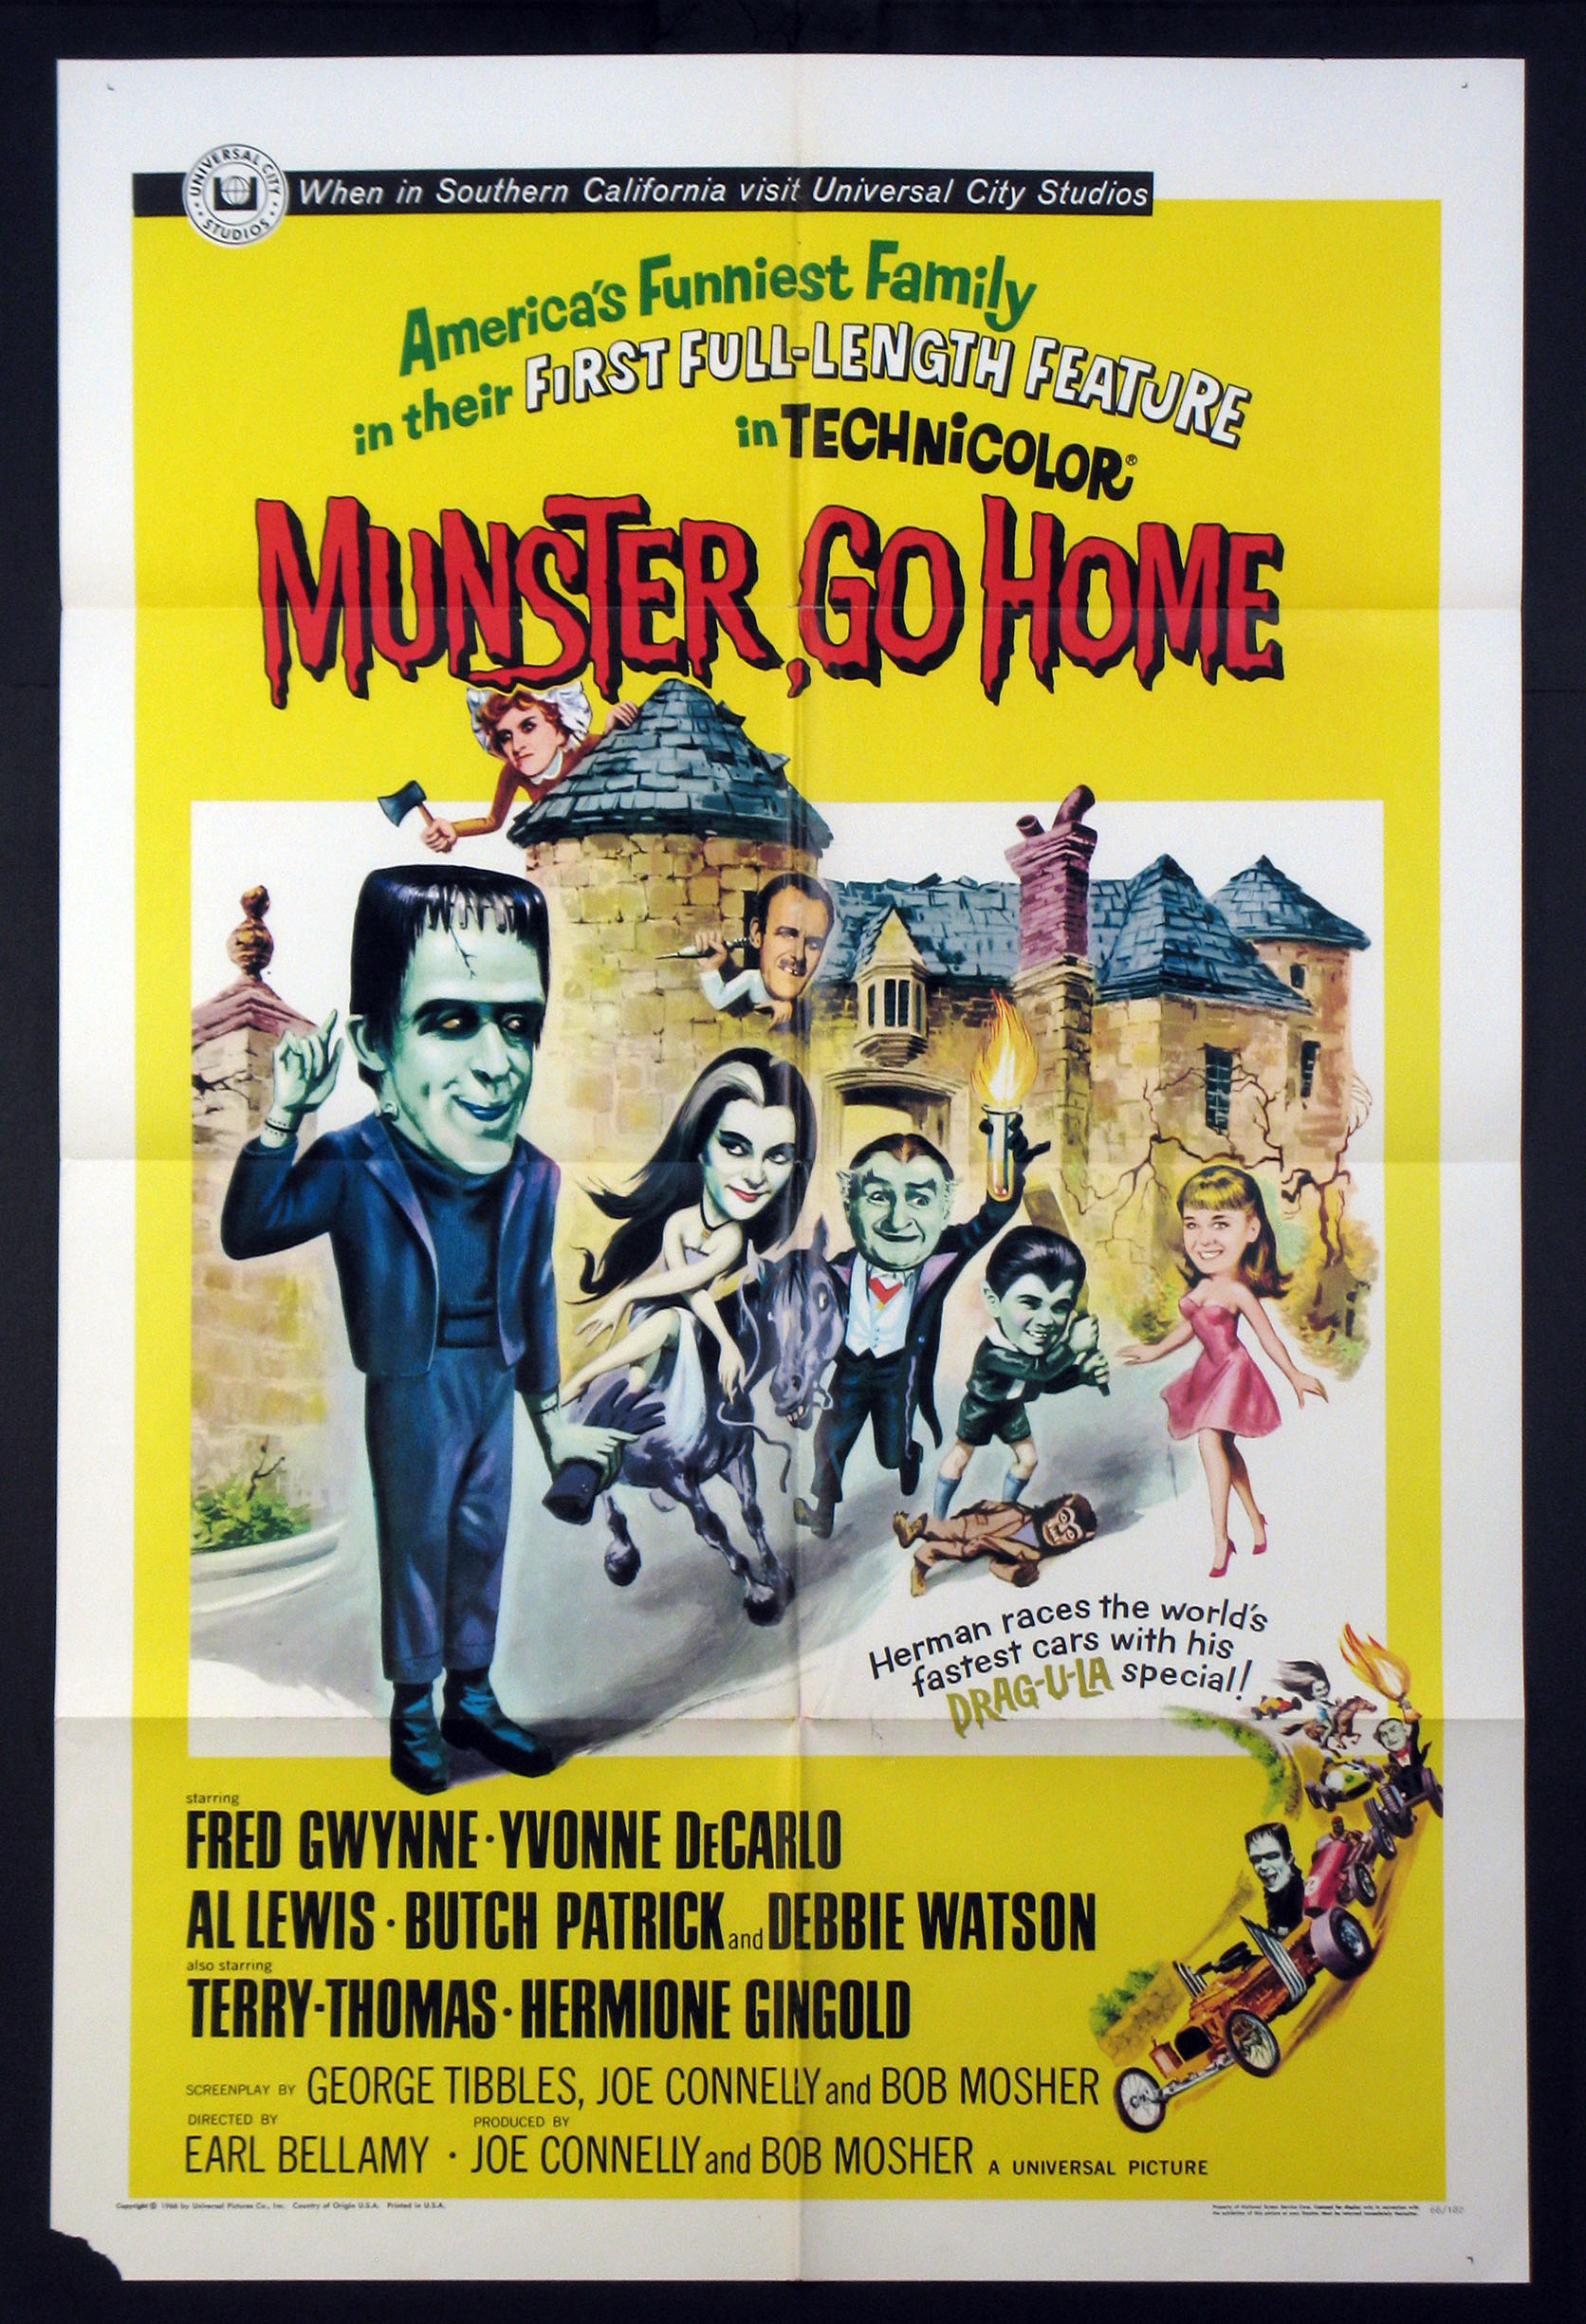 MUNSTER, GO HOME (Munster Go Home) @ FilmPosters.com